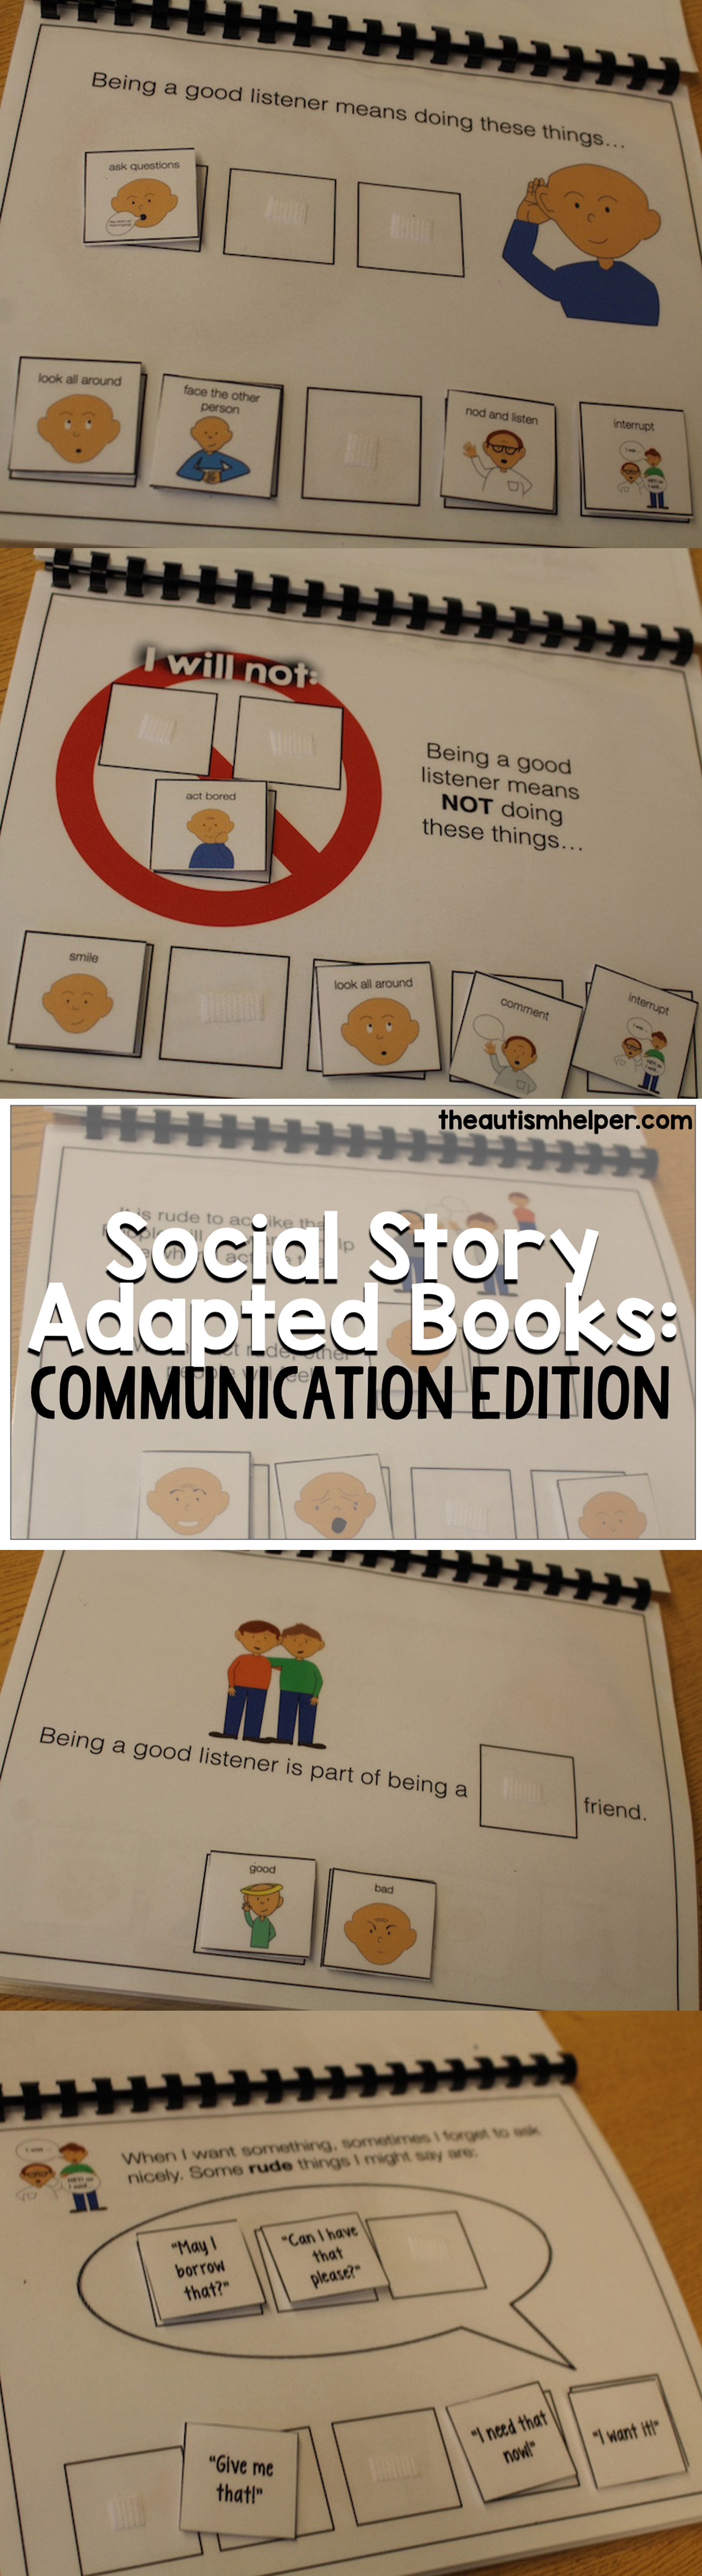 Adapted books mash-up with social stories in our Social Story Adapted Books on the blog!! From theautismhelper.com #theautismhelper.com